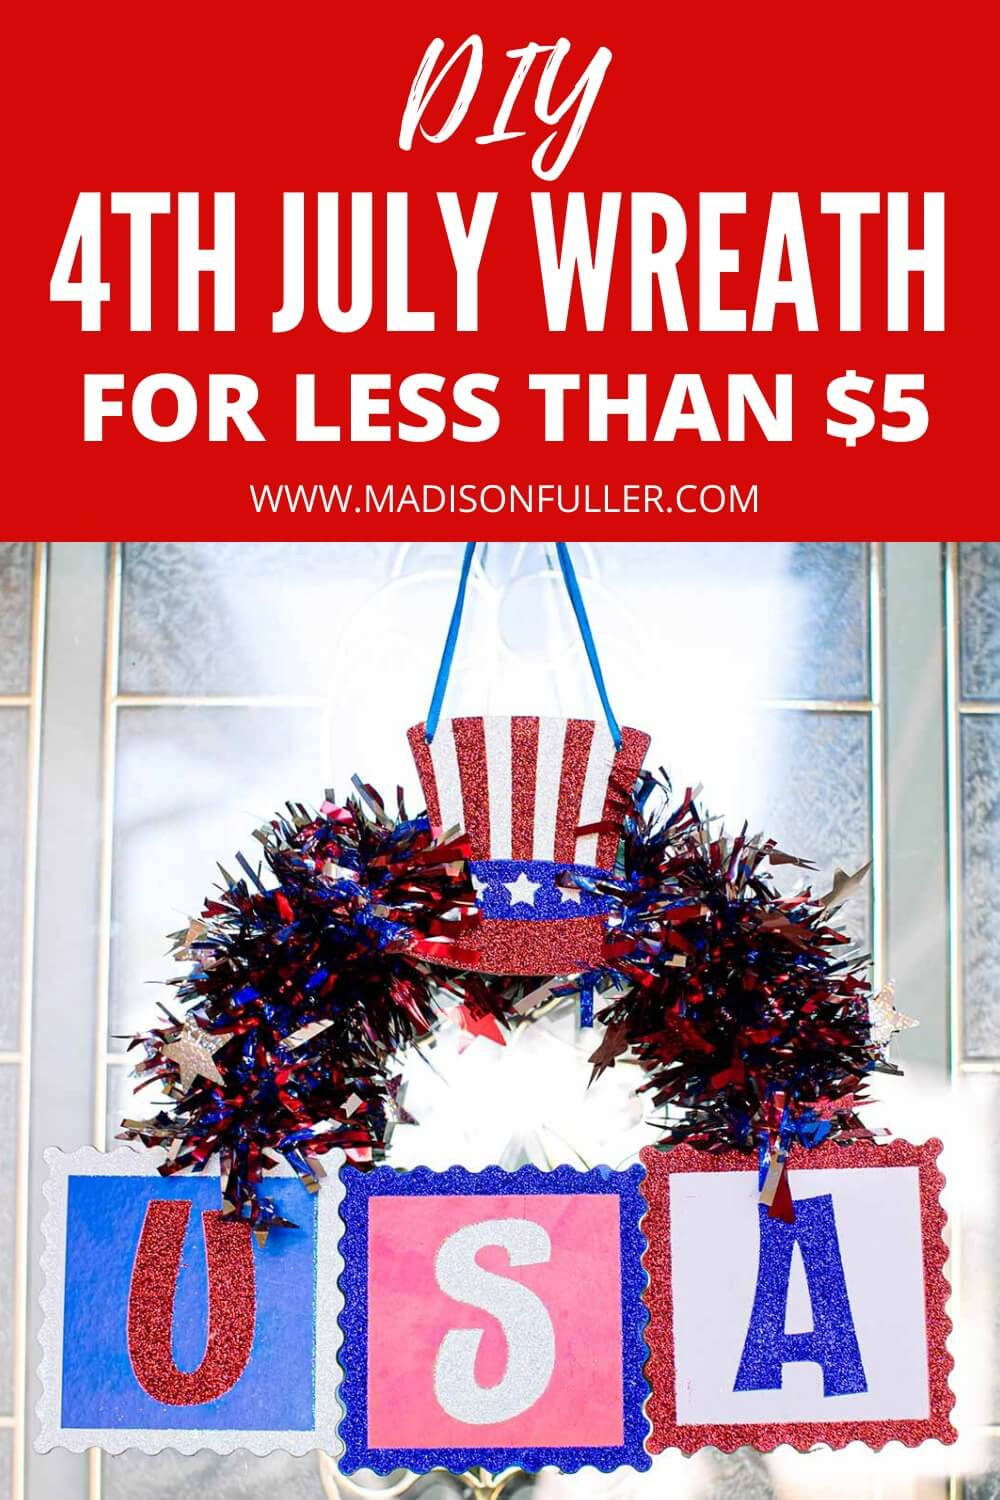 DIY 4th July Wreath For Less Than $5